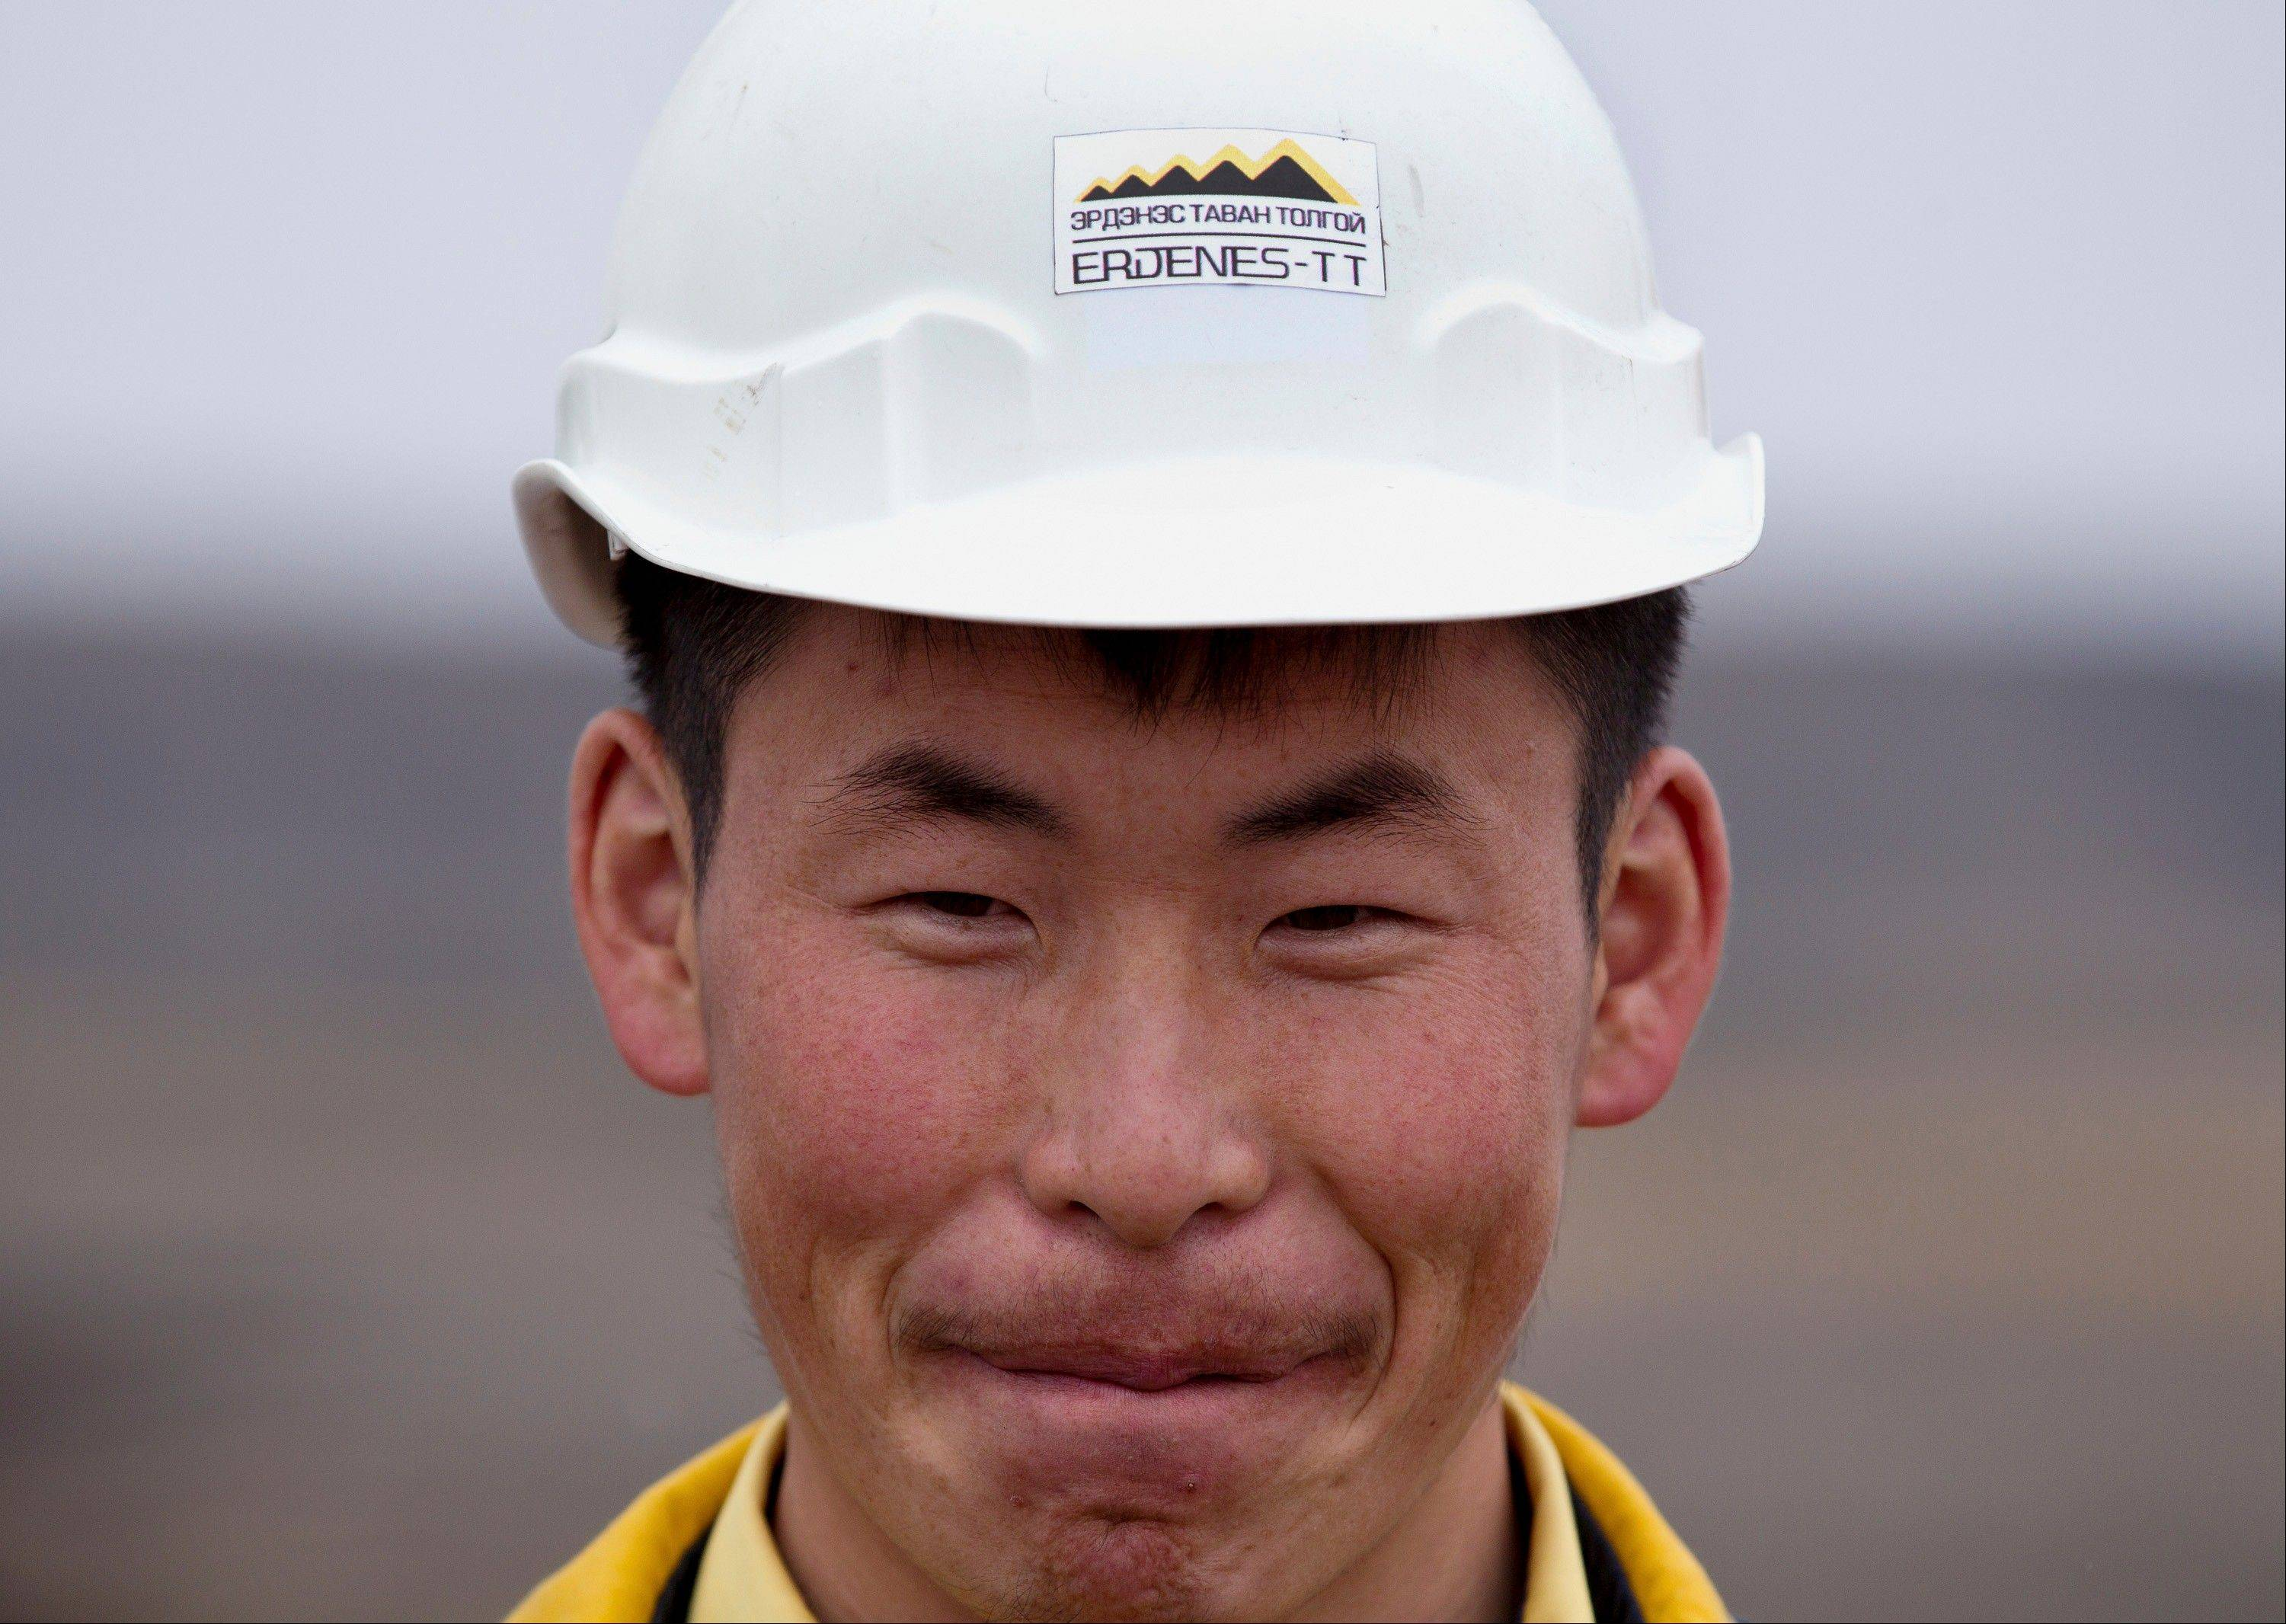 A Mongolian miner smiles while working at Erdenes Tavan Tolgoi, a coal mining company in Tavan Tolgoi, southern Mongolia. Chinese demand for copper and especially coal has propelled the Mongolian economy to one of the world�s fastest growing, making some wealthy and driving down poverty in a still poor country, and China wants a larger share of the resources.